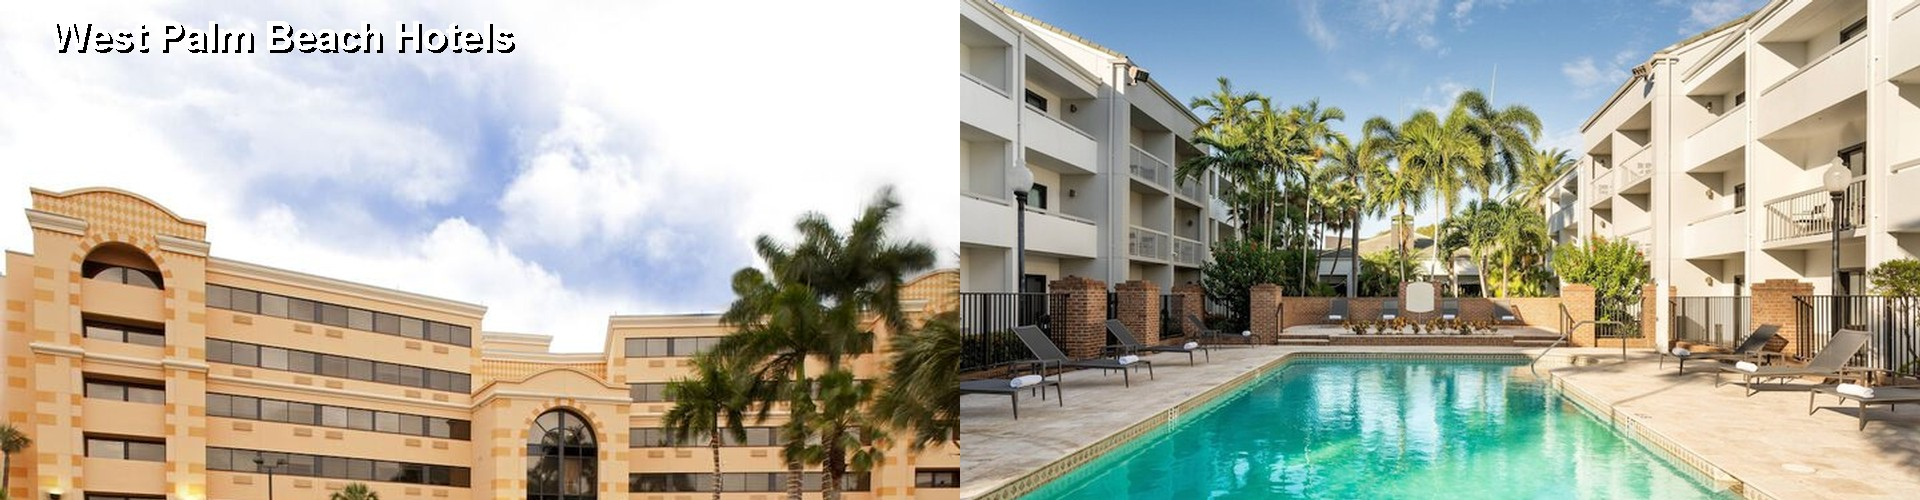 West Palm Beach Hotels Near Newatvs Info